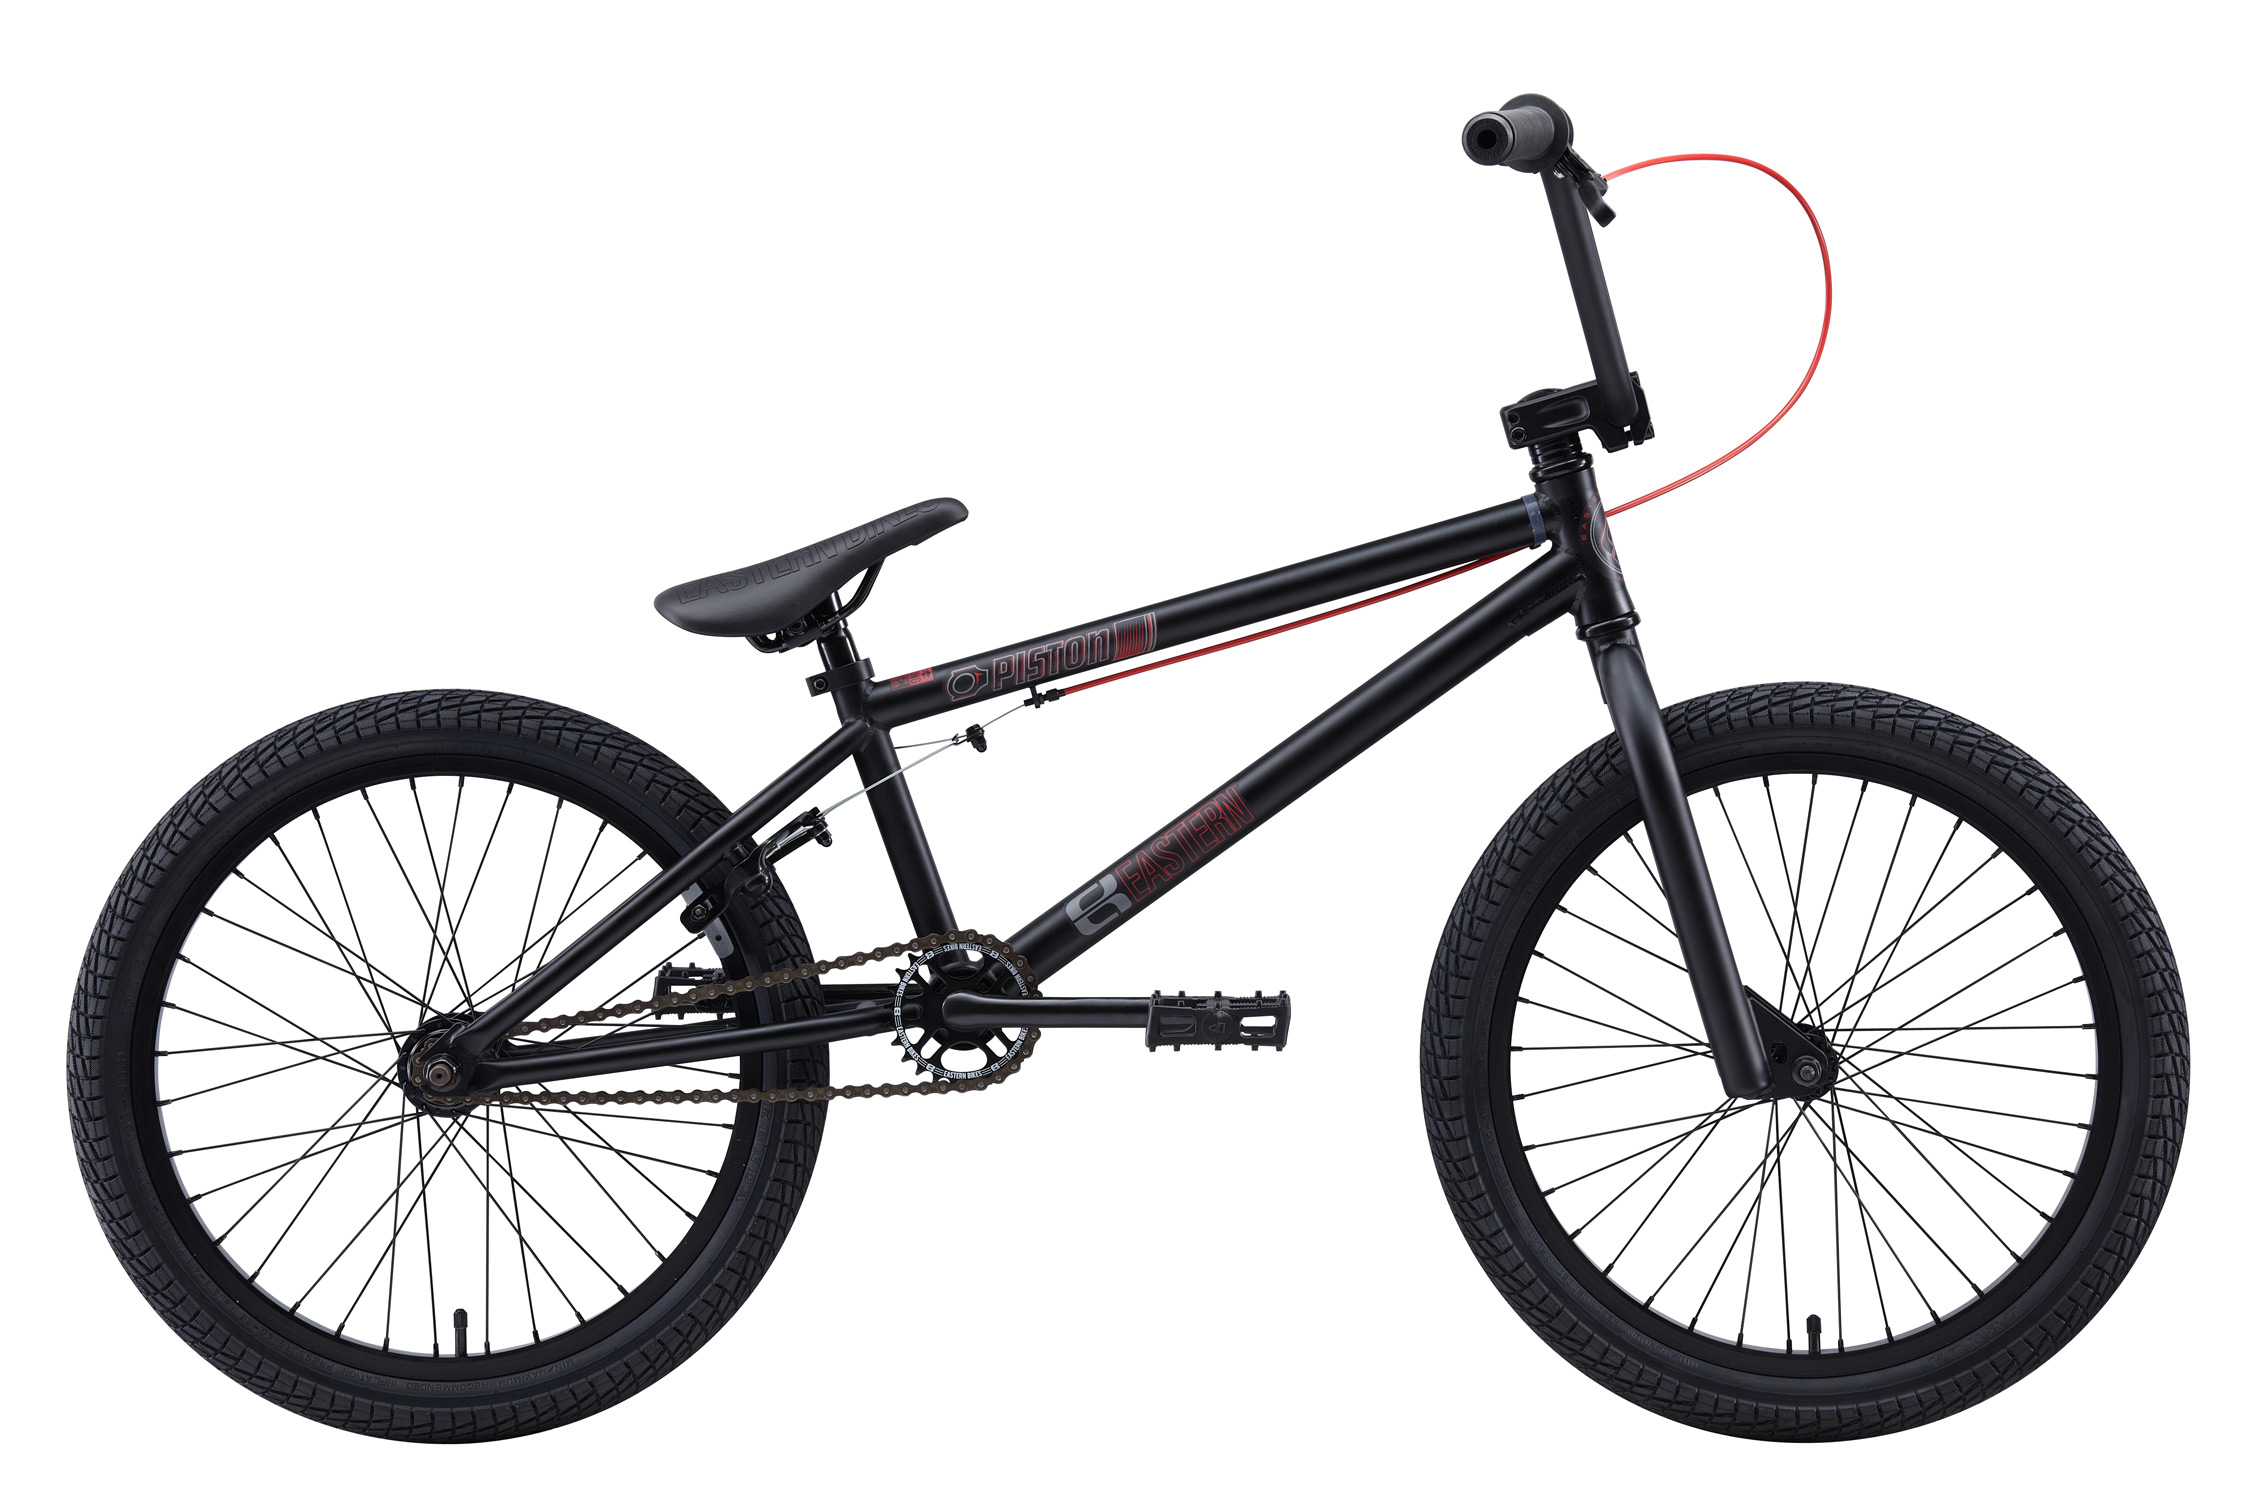 "BMX Key Features of the Eastern Piston BMX Bike Matte Black w/ Black Rims 20"": WEIGHT: 26.7 LBS TOP TUBE SIZE: 19.75"" COLORS: Matte Black/ Matte Hot Blue GEARING: 25/9 Micro-drive FRAME: Piston Hi-Tensile Strength 1020 Steel Frame. Eastern Promise: lifetime warranty, lifetime upgrade policy FORK: Piston Hi-Tensile Strength 1020 Steel BARS: 7.75""x 27.5"", 1"" Upsweep, 12"" Backsweep HEADSET: 1-1/8"" Aheadset BB: American Loose Ball Bearing PEDALS: VP Components Plastic Platform Pedals GRIPS: Velo Mushroom Grip* STEM: Forged Alloy Front Load SPROCKET: 25T Steel CRANKS: Forged & Heat-Treated 1pc. Cro-Mo Cranks. Light & Strong. SEAT: Adjustable Saddle with Embossed Logo SEATPOST: Steel SEAT CLAMP: Nitrous Locker Forged Alloy Clamp TIRES: Multi-Surface , 20"" x 2.35"" ** FRONT HUB: 36 hole 3/8"" chromoly axle, Loose Ball Bearing REAR HUB: Fully Sealed 36 hole cassette hub, Forged Alloy Shell, 1pc. 9-tooth chromoly driver, 14mm chromoly axle, 5 sealed bearings RIMS: Alloy 36 Hole REAR BRAKES: Tektro Forged Alloy U-Brake /Straight Cable / Forged Alloy lever, Designed for U-Brakes FREEWHEEL: Sealed bearing 9-tooth 1pc. driver CHAIN: KMC - $249.95"